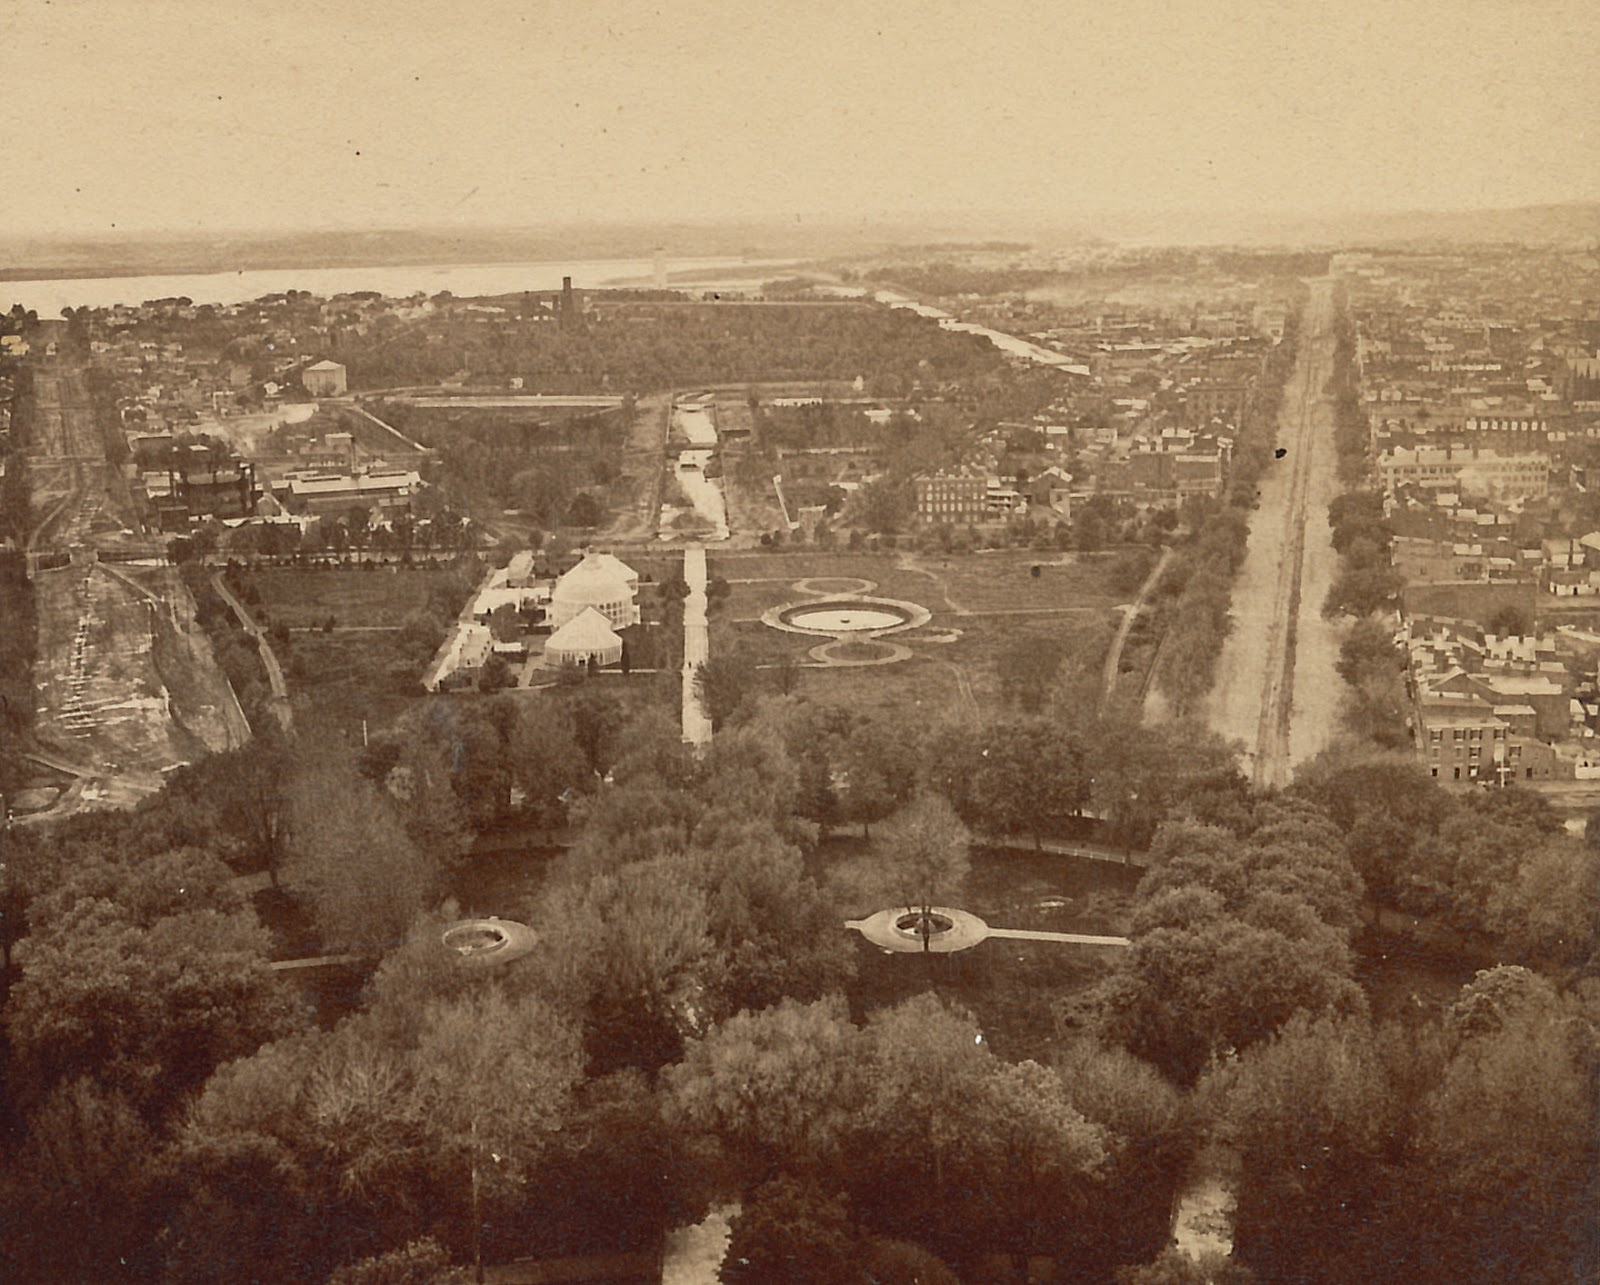 View of the Mall in 1870